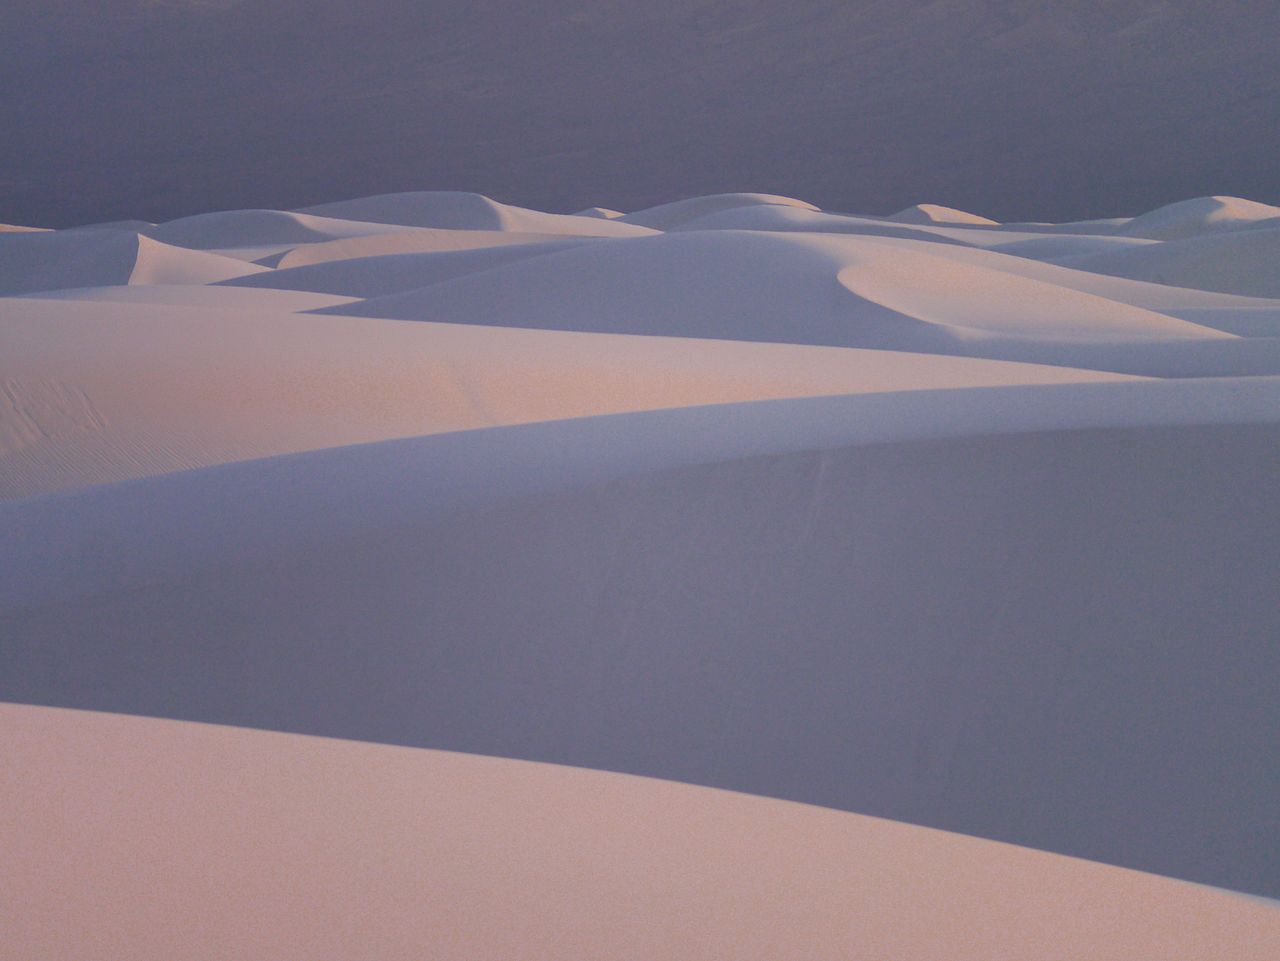 Desert Dunes, New Mexico